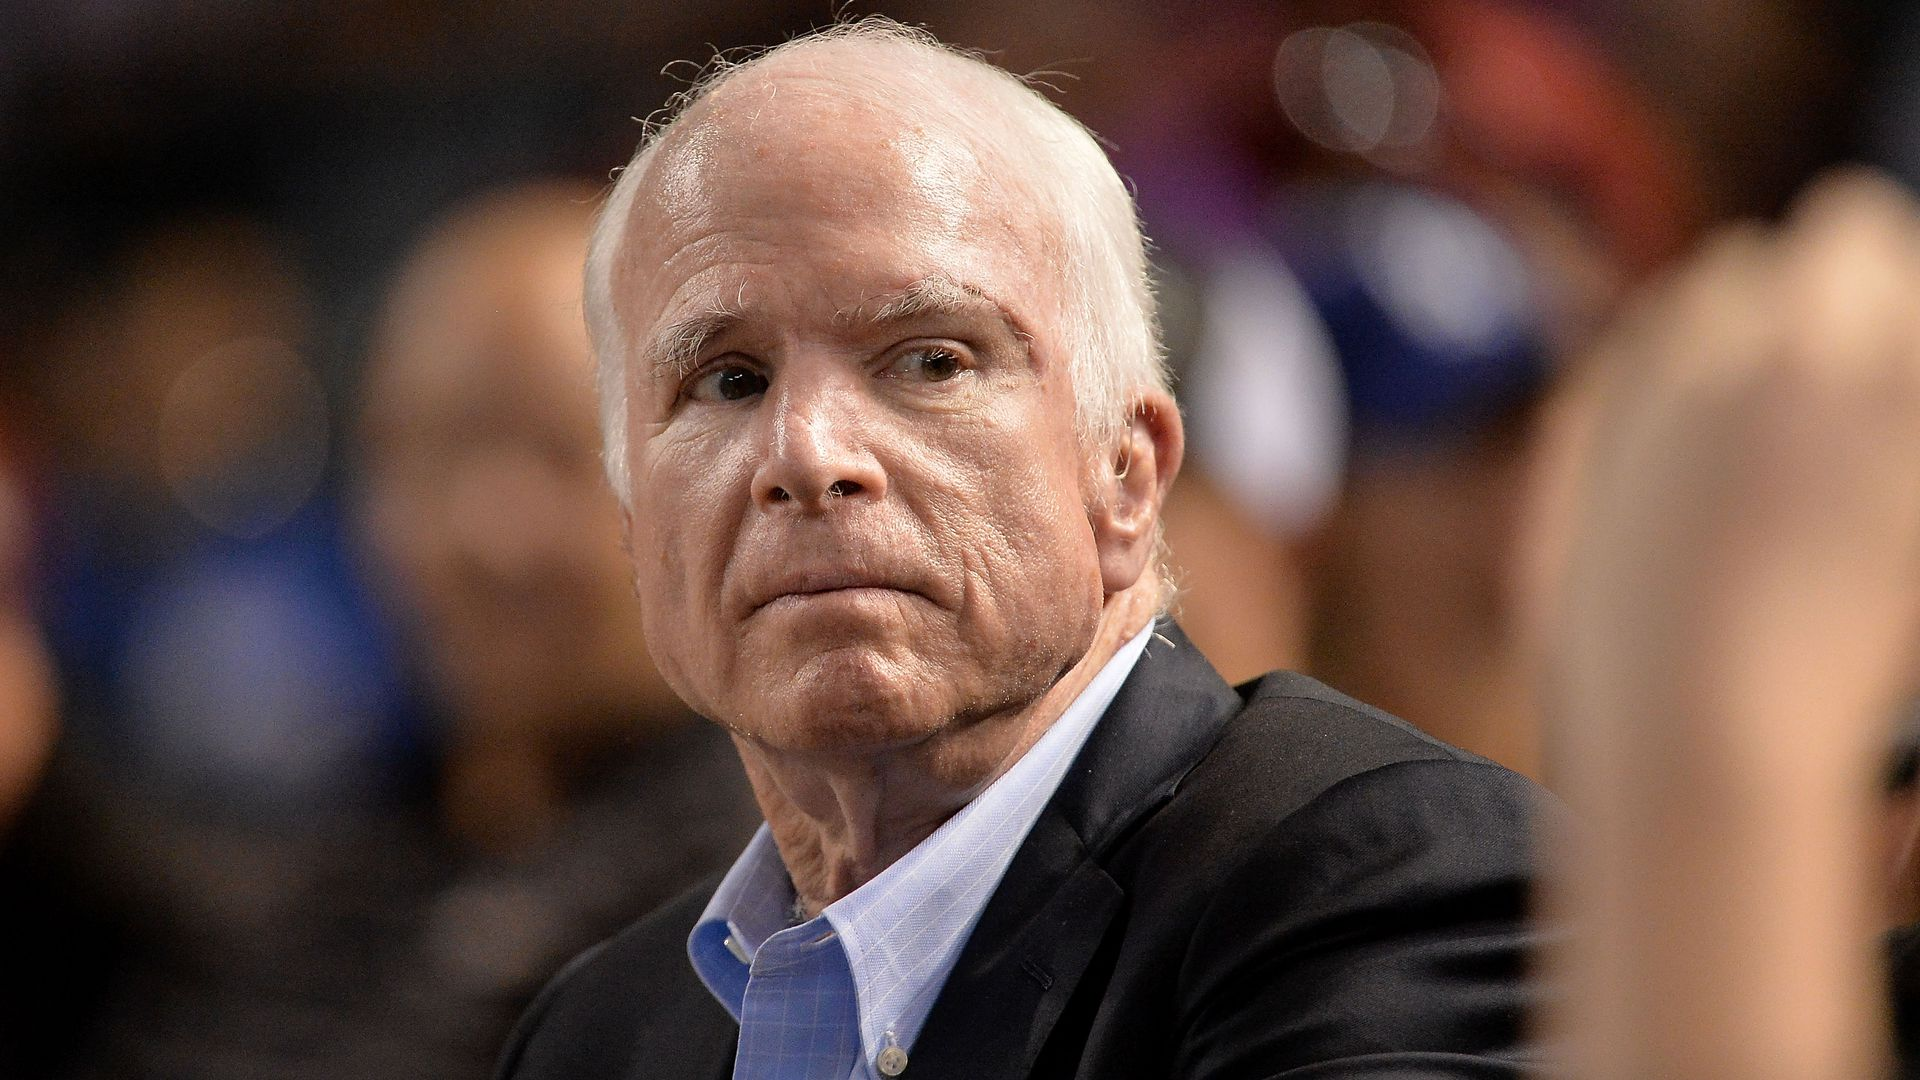 John McCain looks out at a crowd